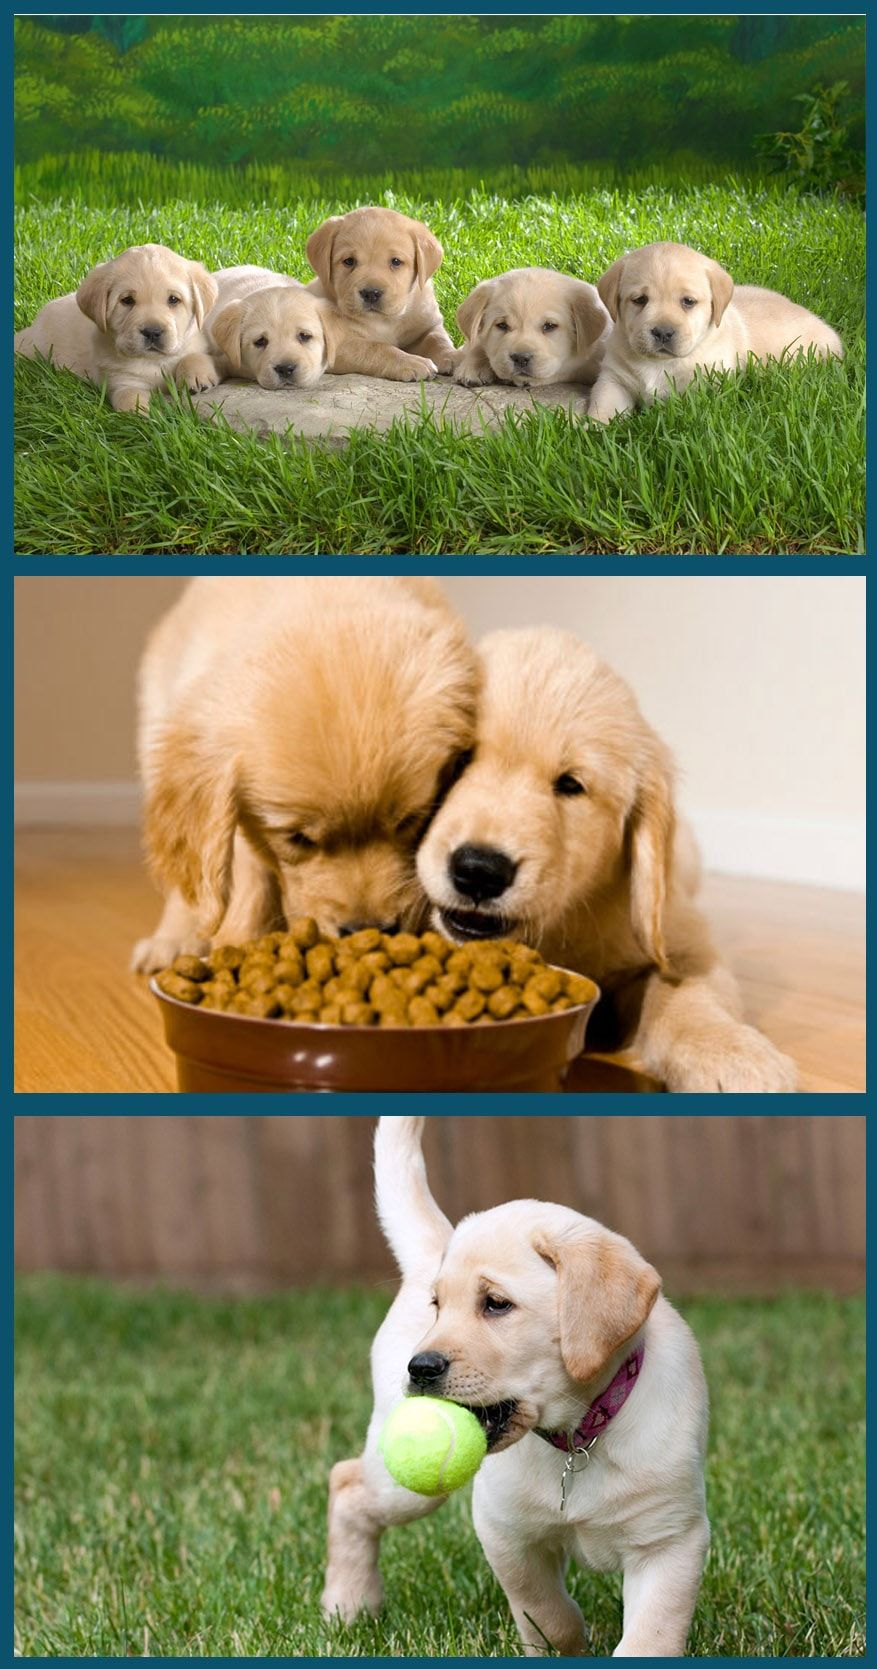 How To Raise A Golden Retriever Puppy With Some Very Useful Tips